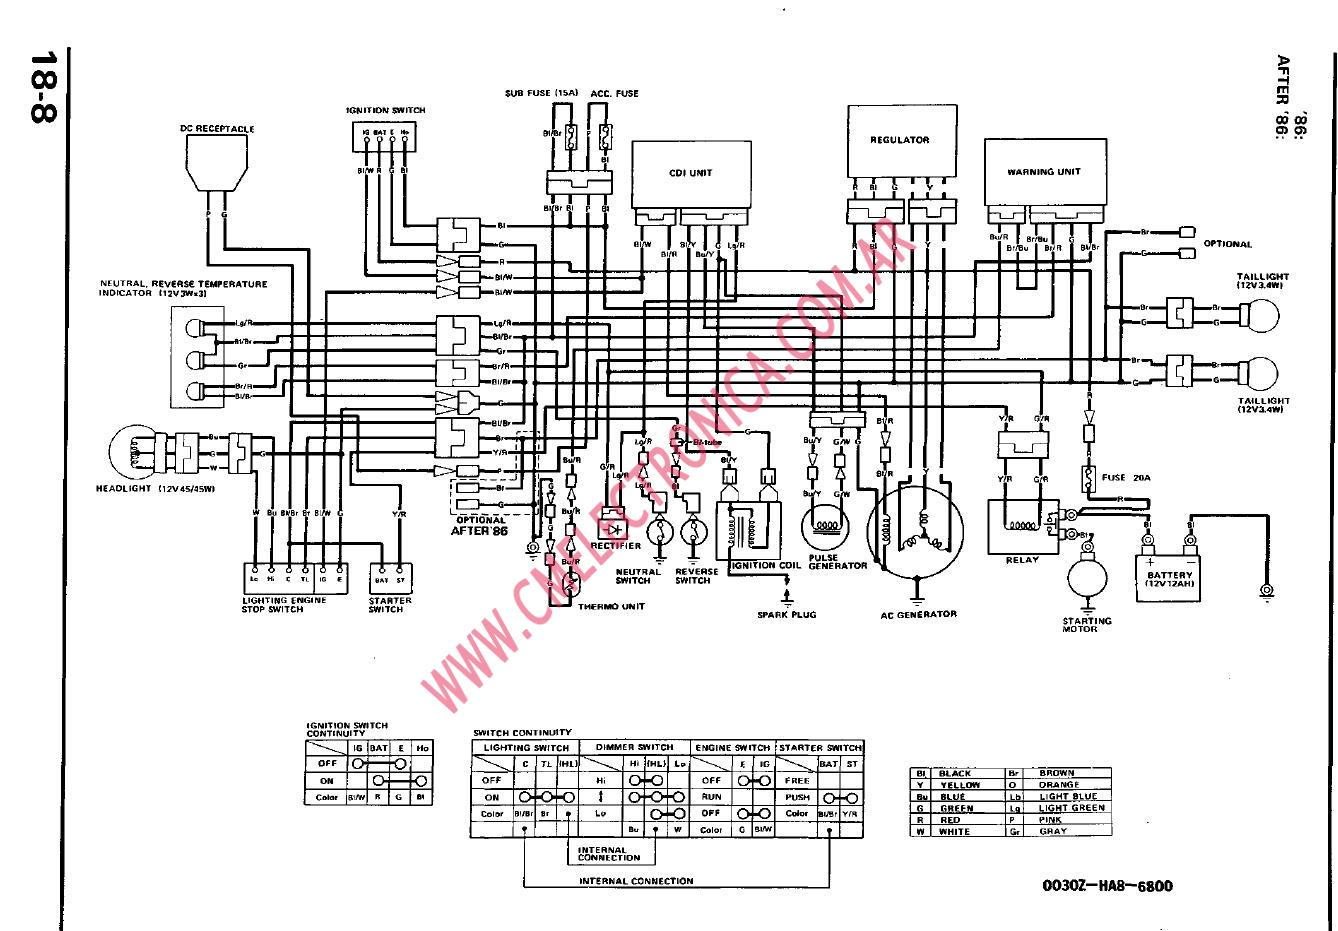 Honda Foreman 350 Carburetor Diagram further Honda 300 Fourtrax Rear Axle Diagram additionally Honda Rancher Vacuum Diagram Wiring Diagrams furthermore 9288 1st Quad Need Help in addition Honda 4 Track 1996 Atv Wiring Schematic. on wiring diagram picture honda rancher 350 es 2002